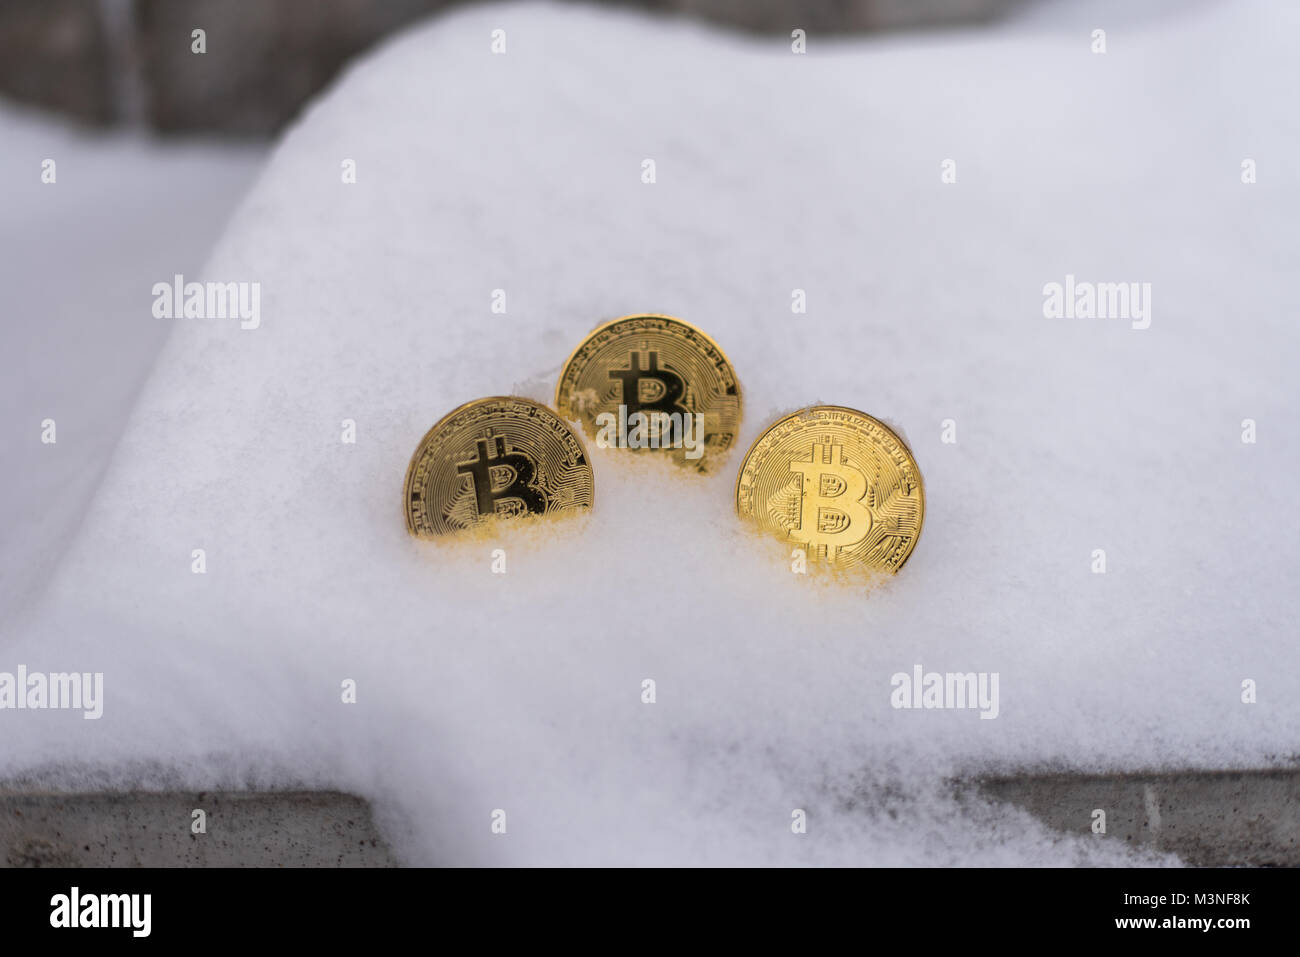 Gold coins bitcoin, crypto-currency in winter, lies a white snowdrift, on the street. The lost money. Abandoned - Stock Image